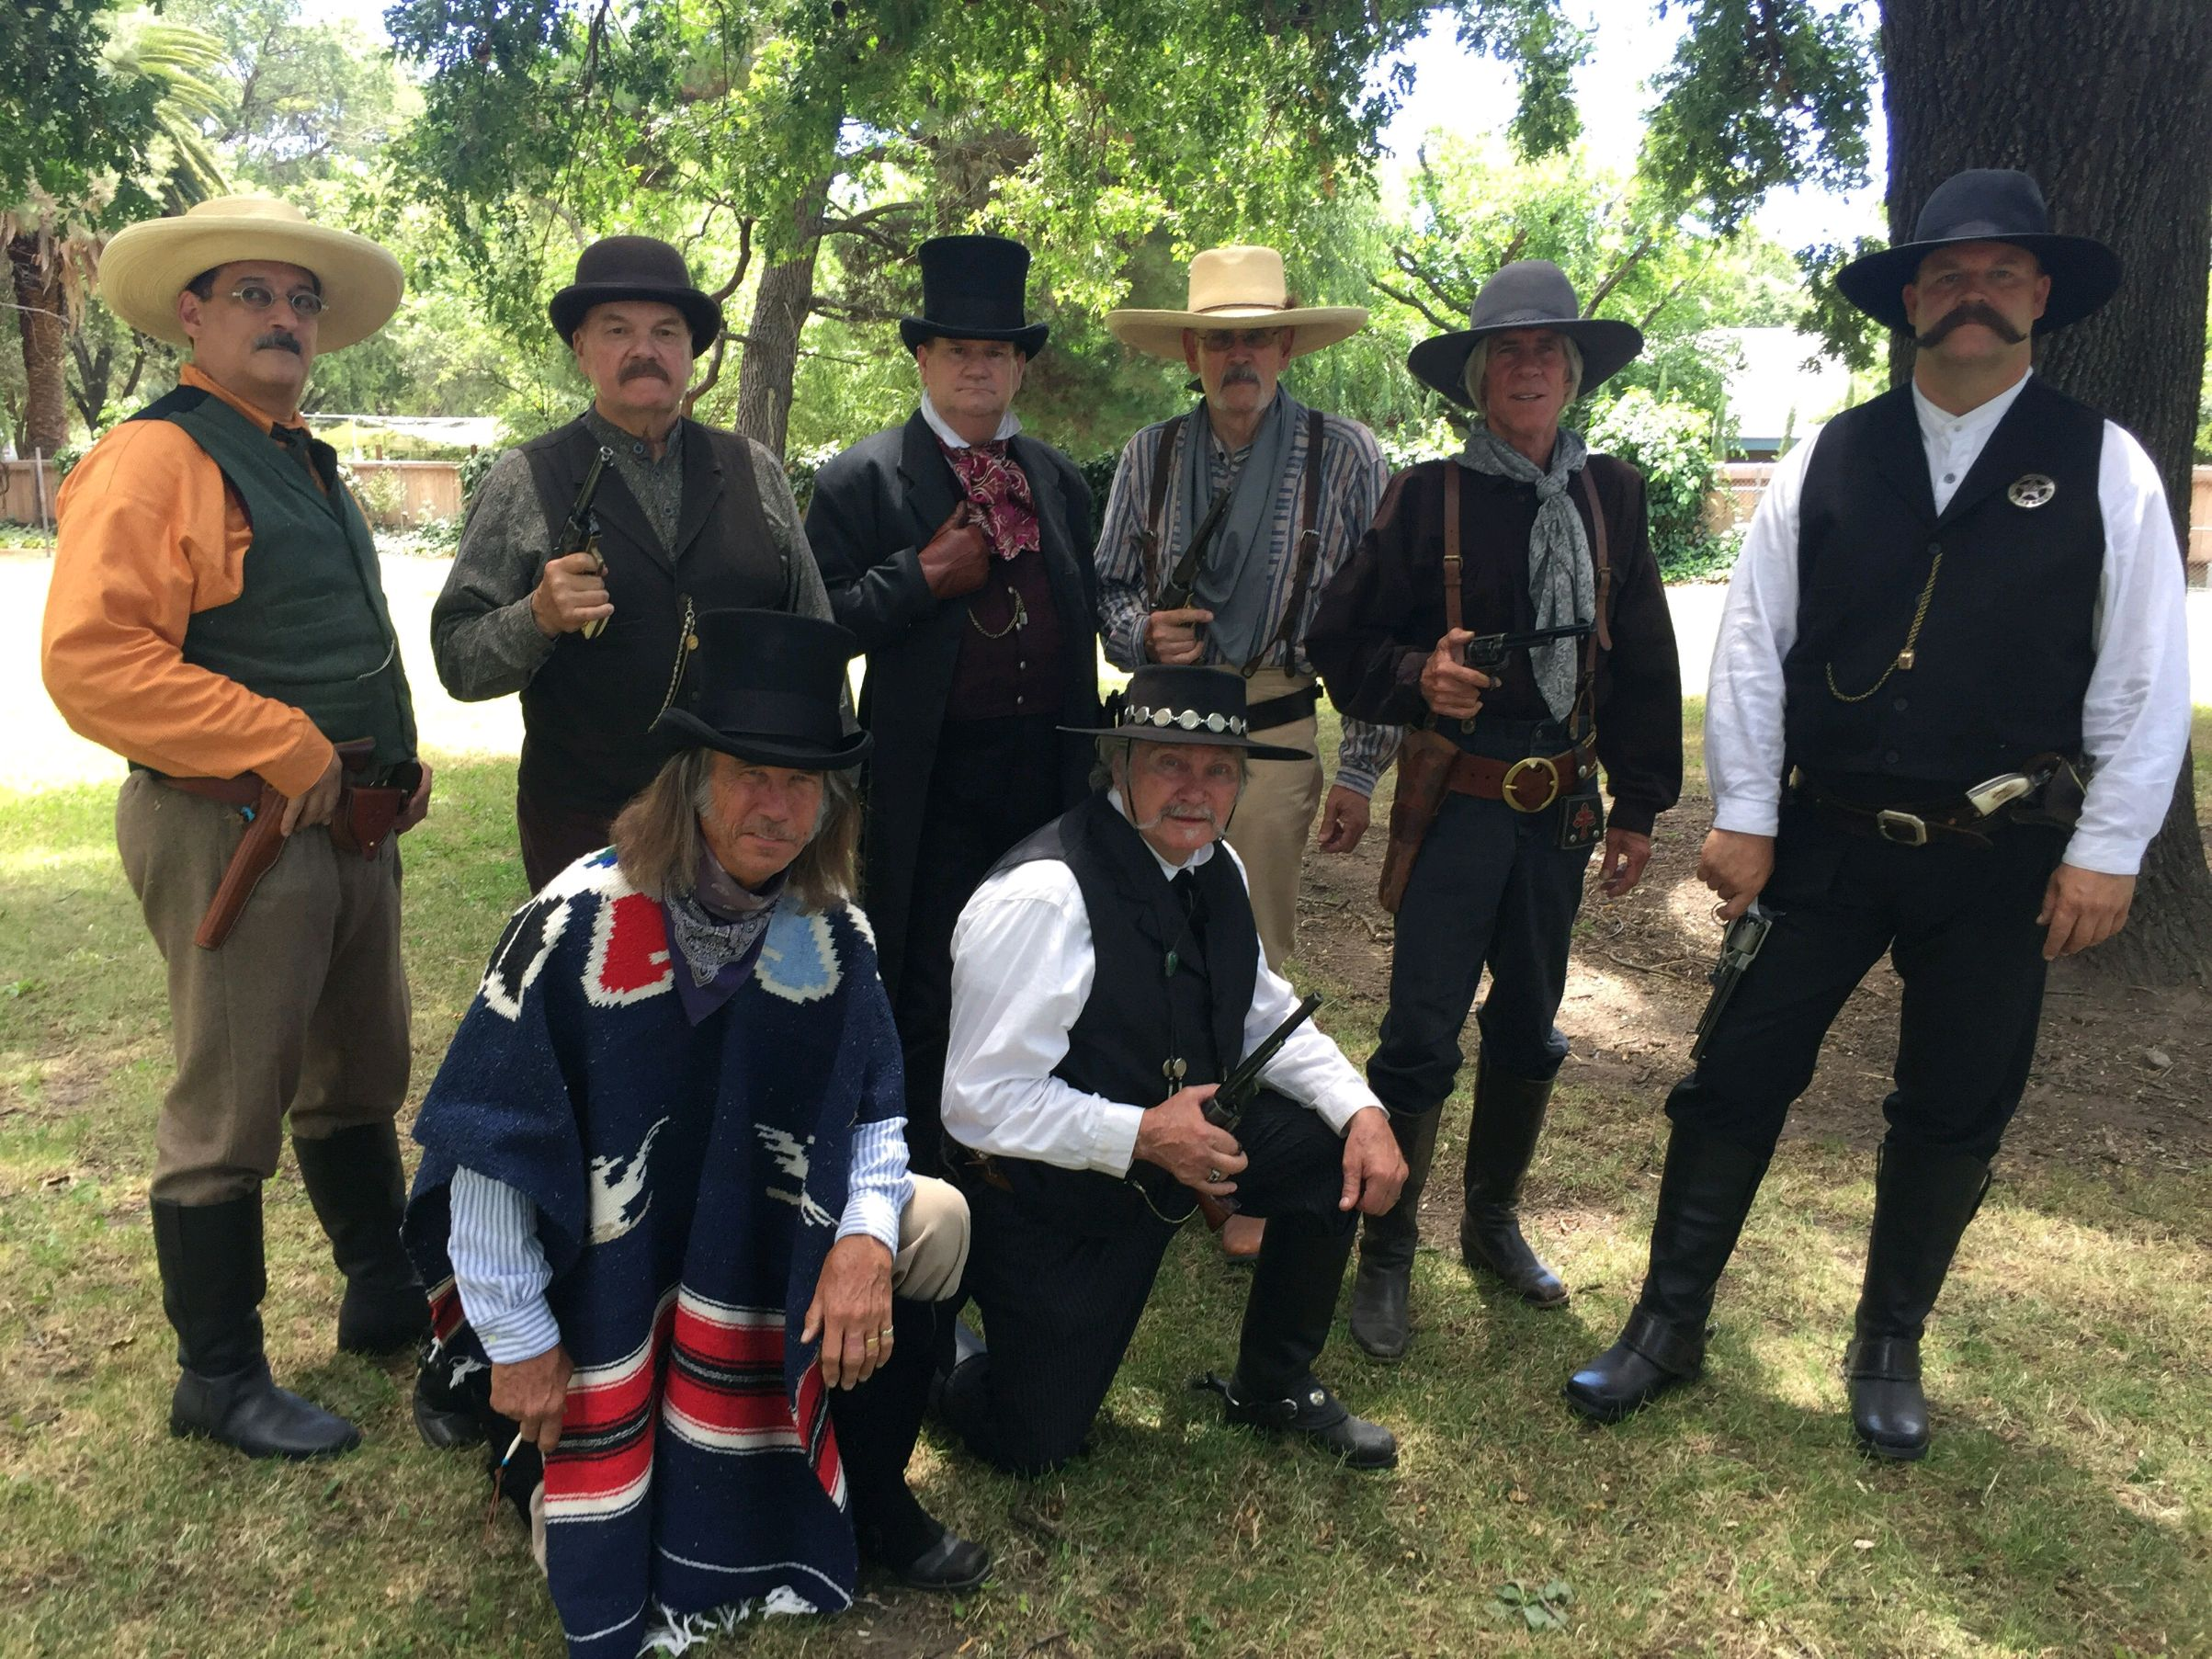 The Congressional Gunfighters of America